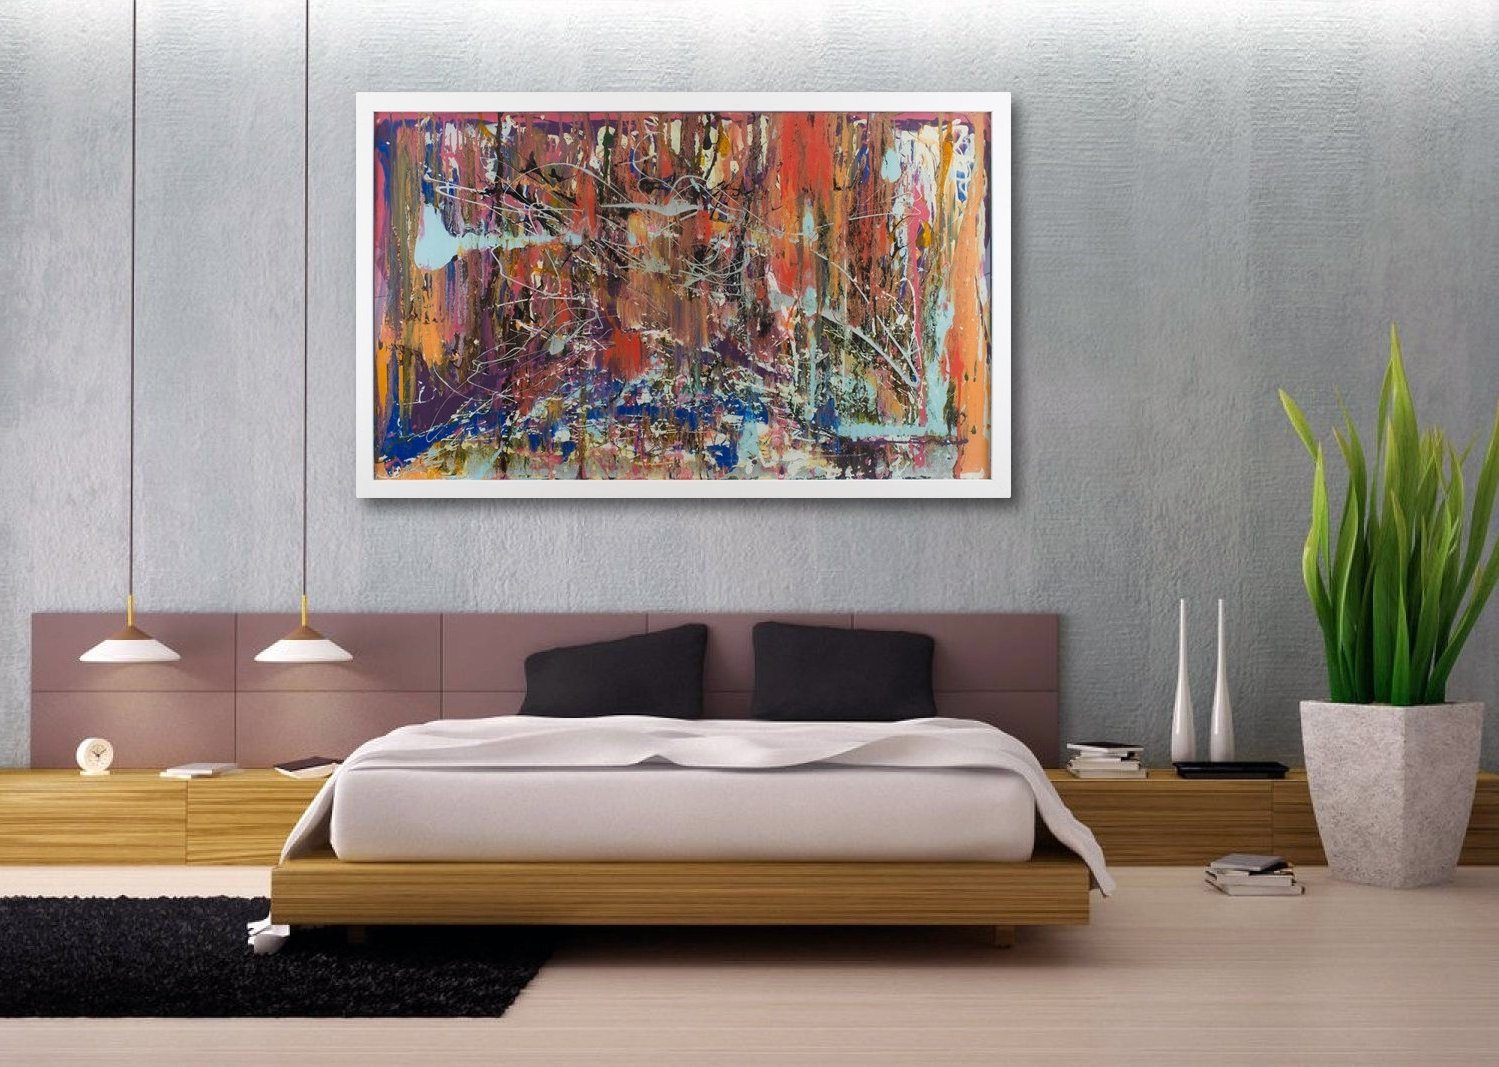 Expensive Large Canvas Wall Art Bedroom — Joanne Russo Homesjoanne For Favorite Embellished Canvas Wall Art (View 9 of 15)